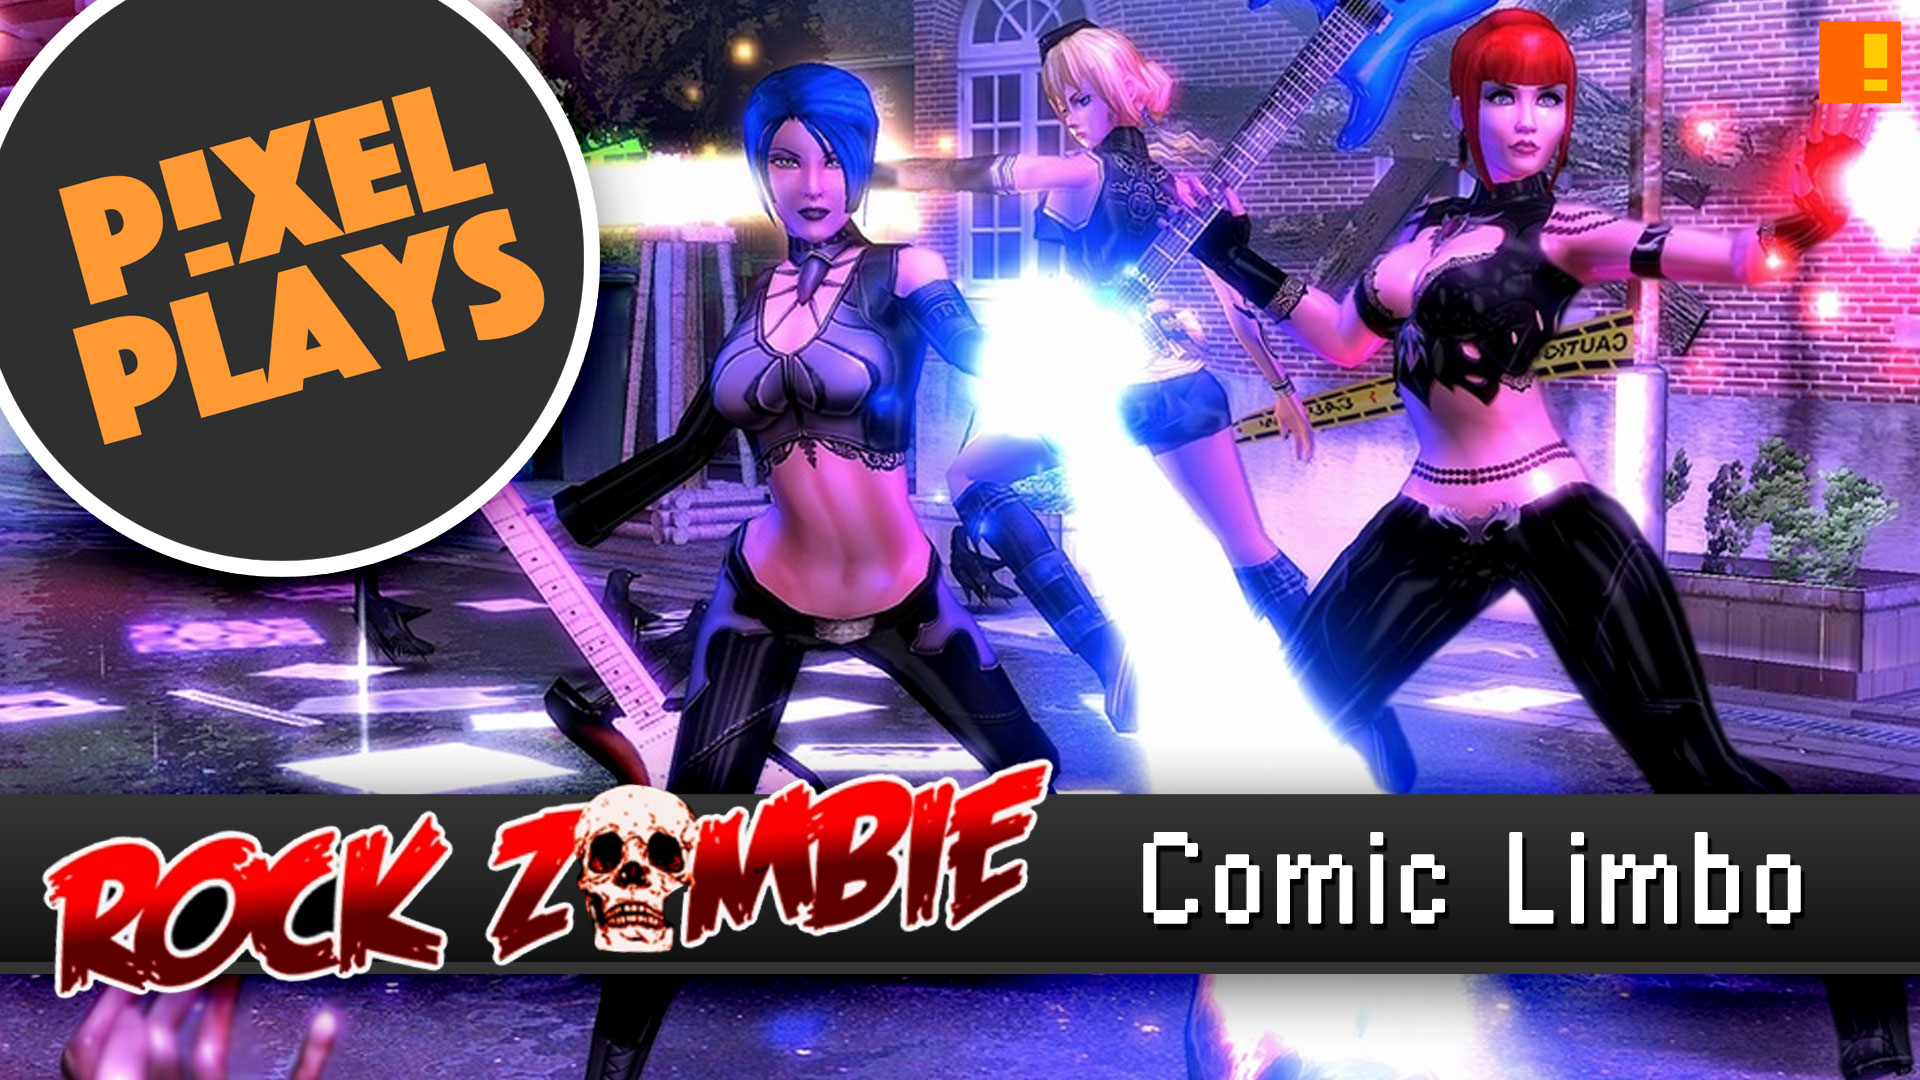 Pixel plays: rock zombie comic limbo. the action pixel. @theactionpixel. #pixelplays